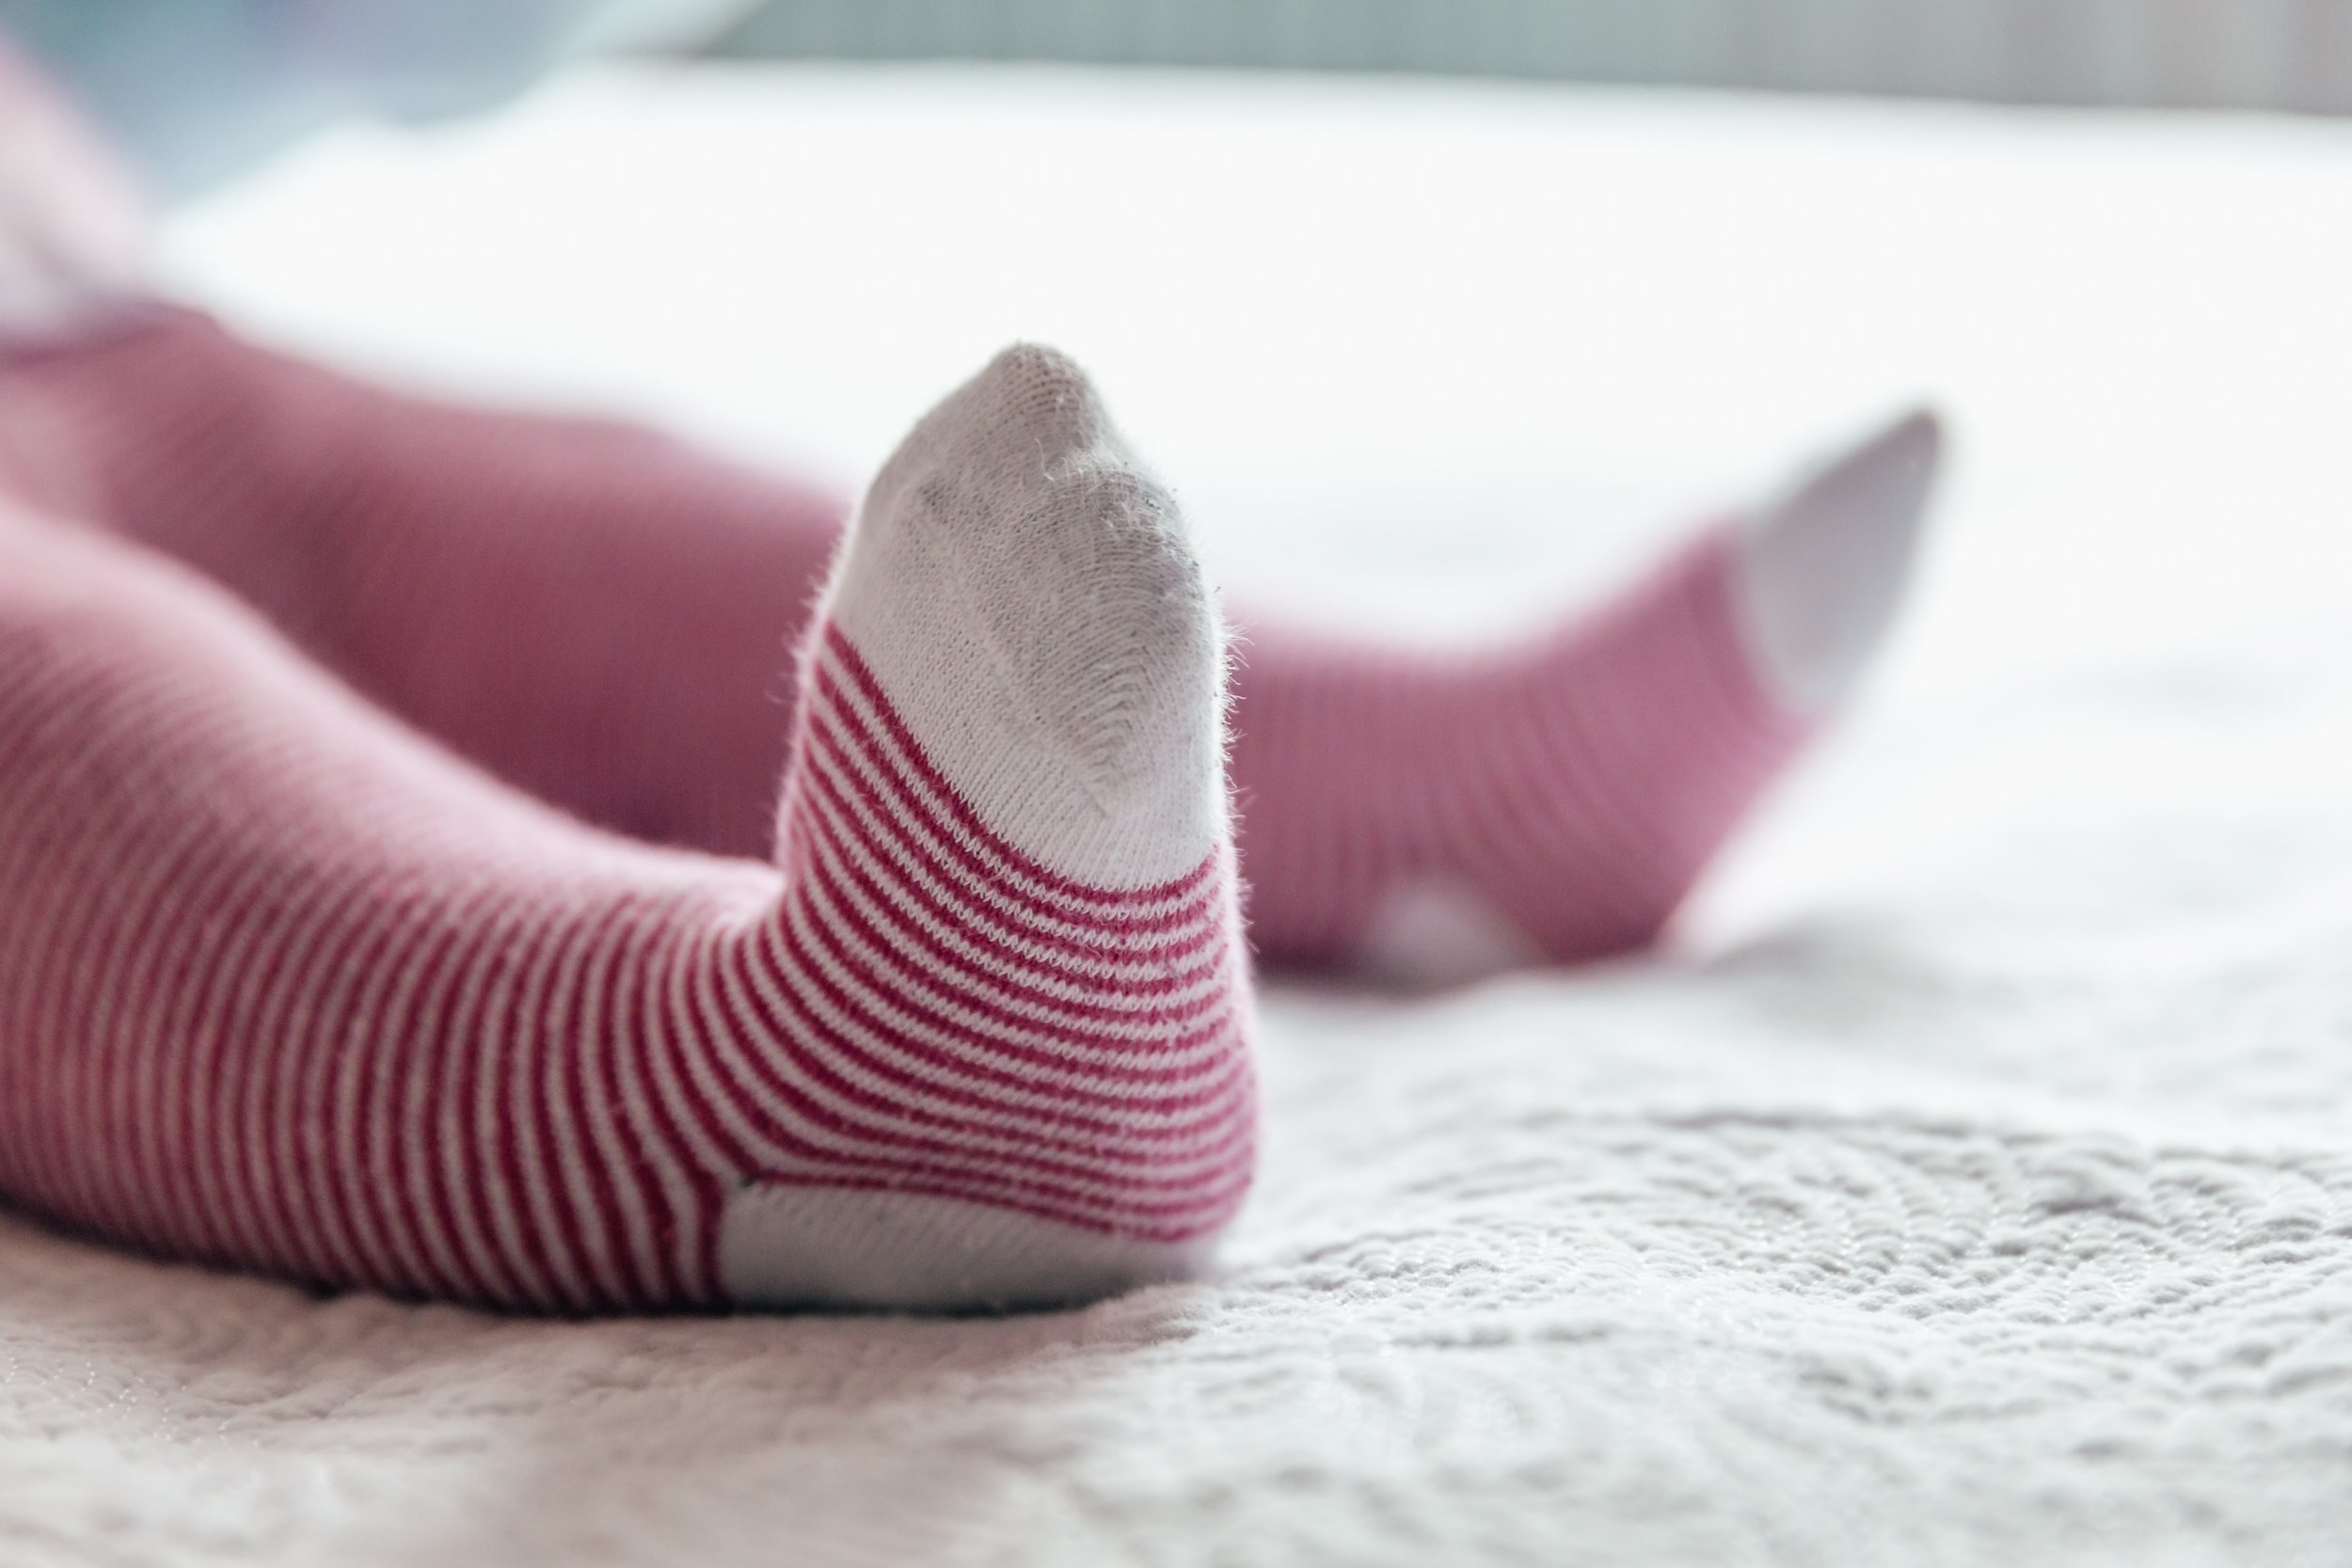 baby-feet-in-striped-socks_4460x4460.jpg